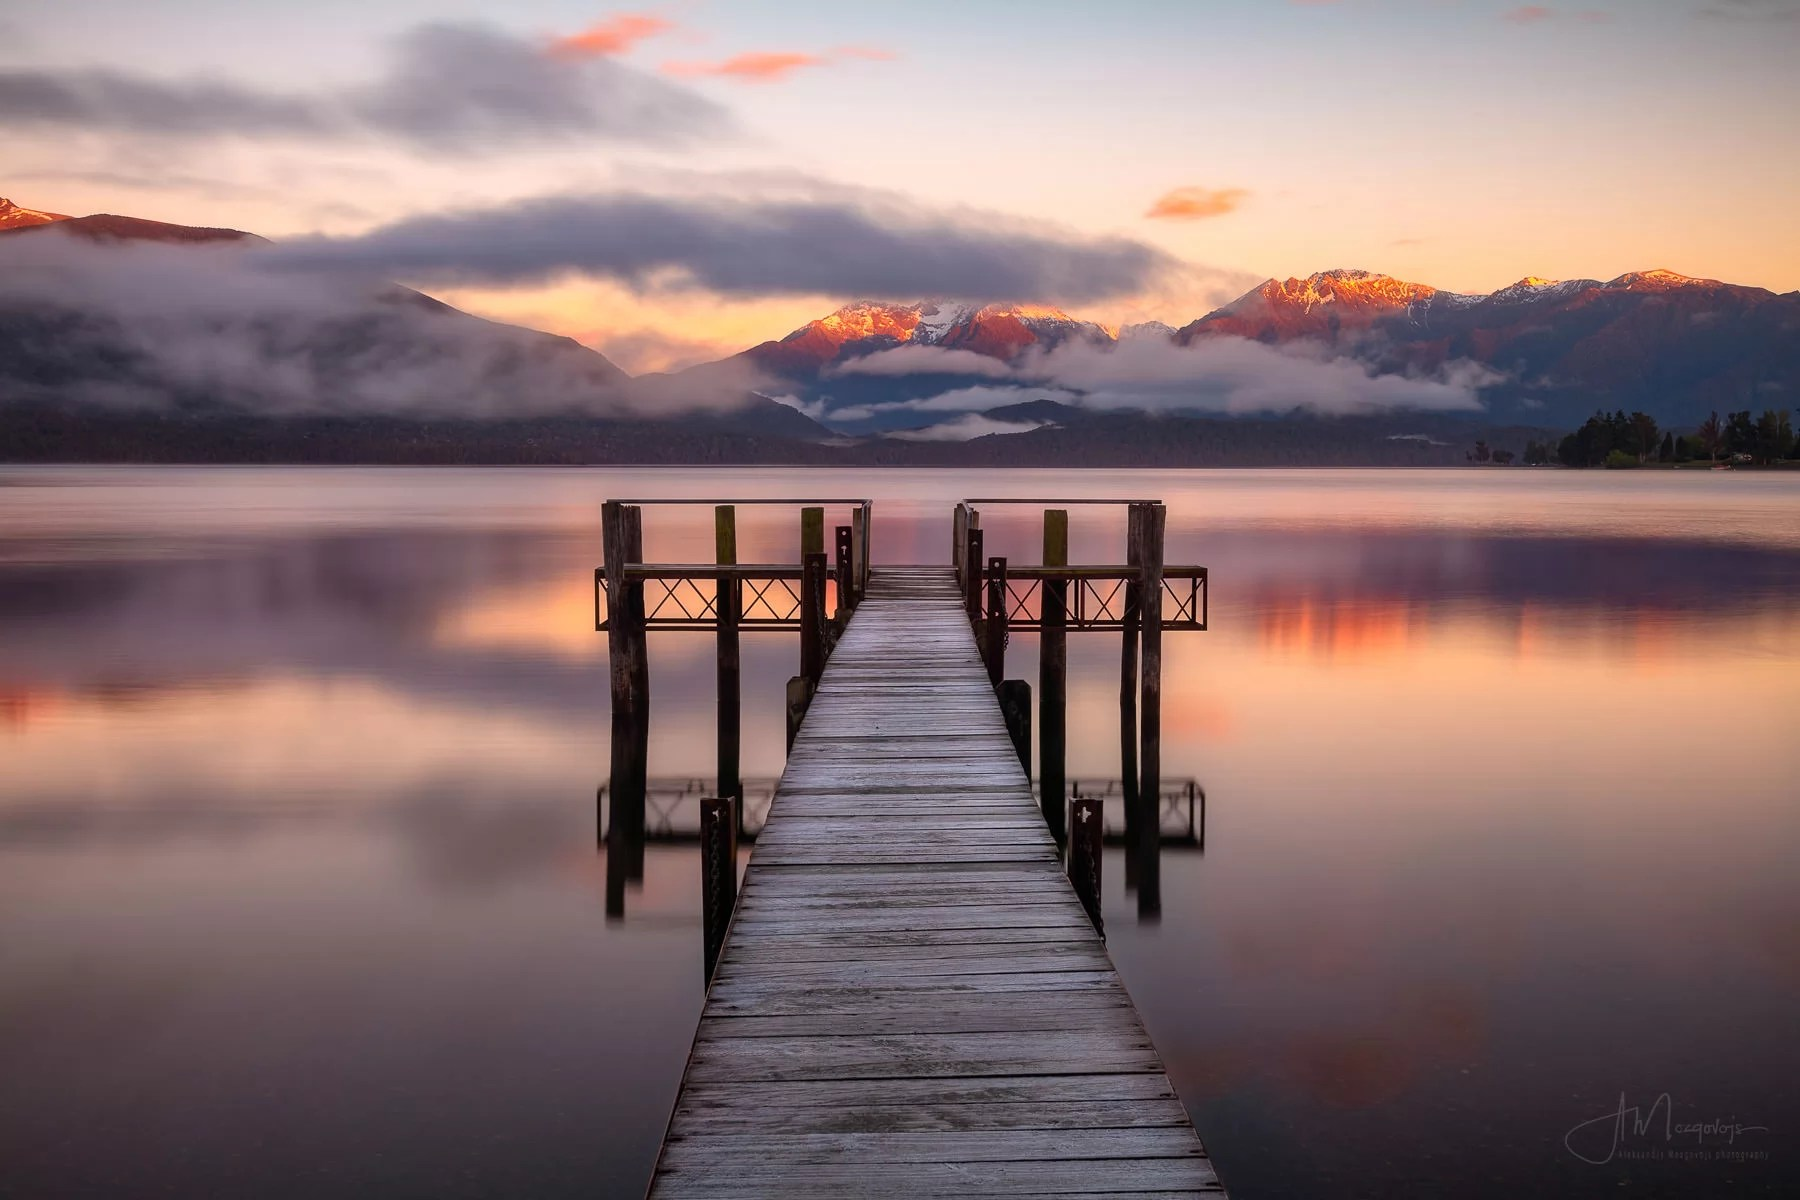 Sunrise in Te Anau